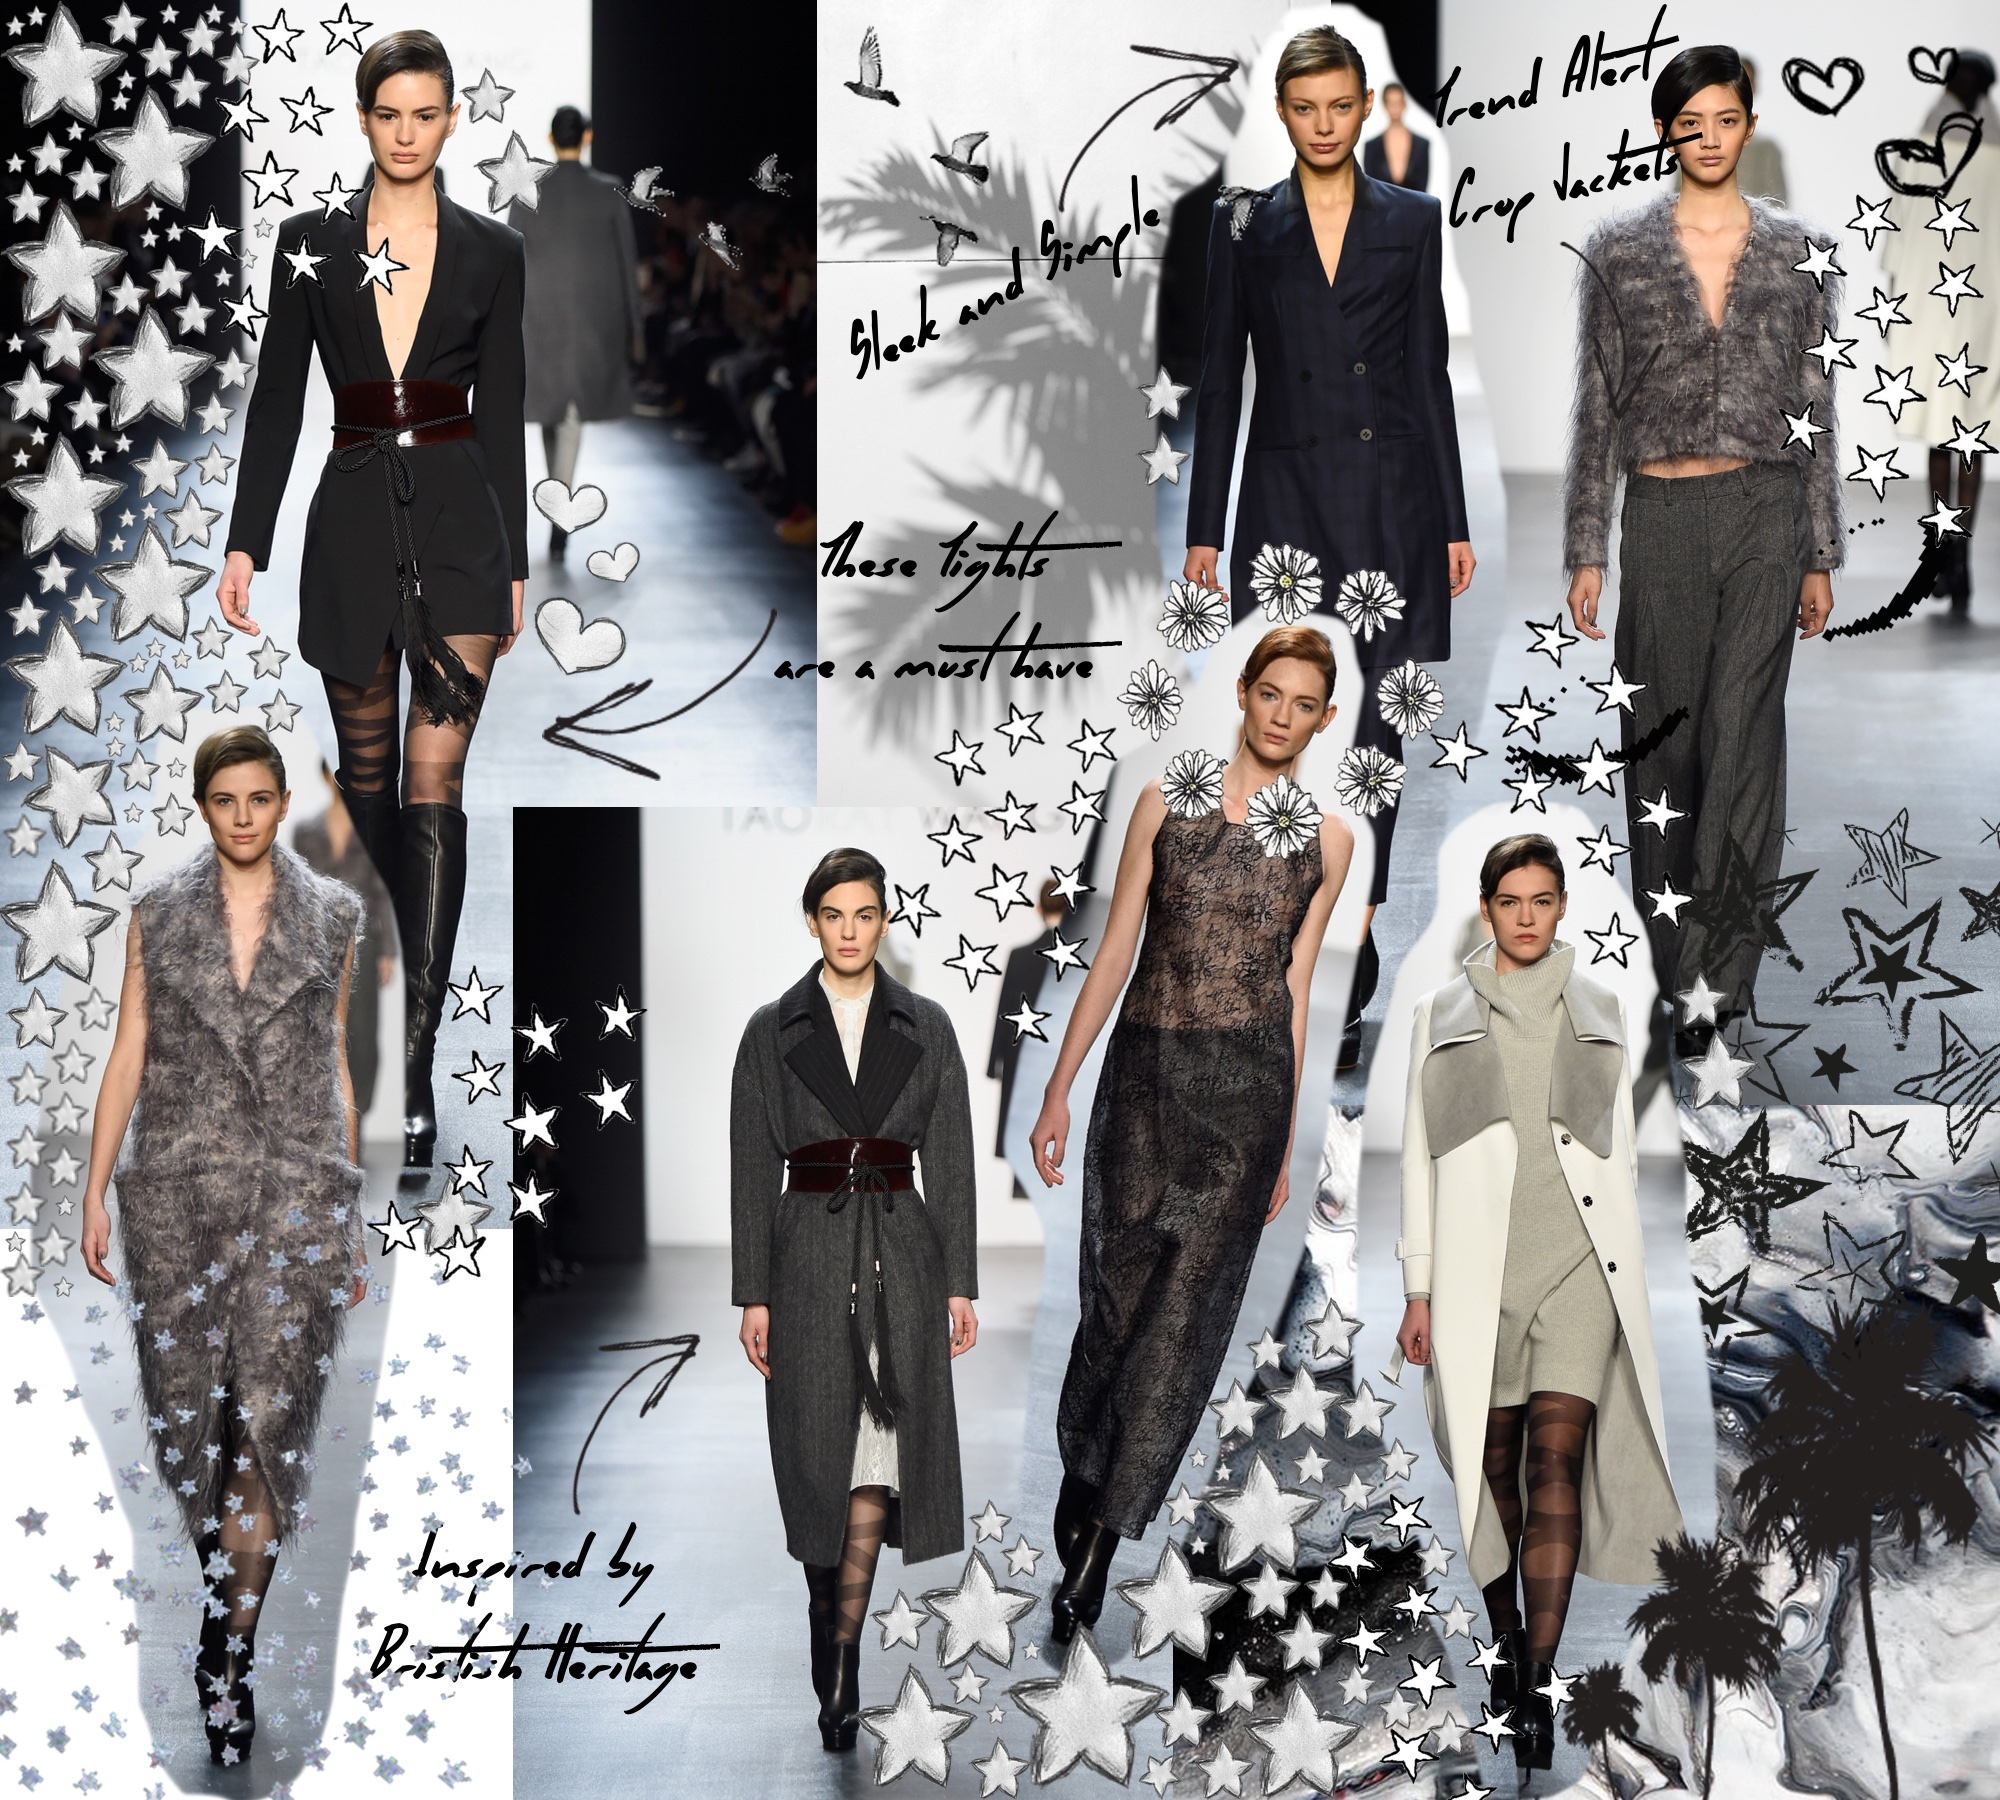 Tao Ray Wang Fall 2016 Runway Show New York Fashion Week: To Style, With Love